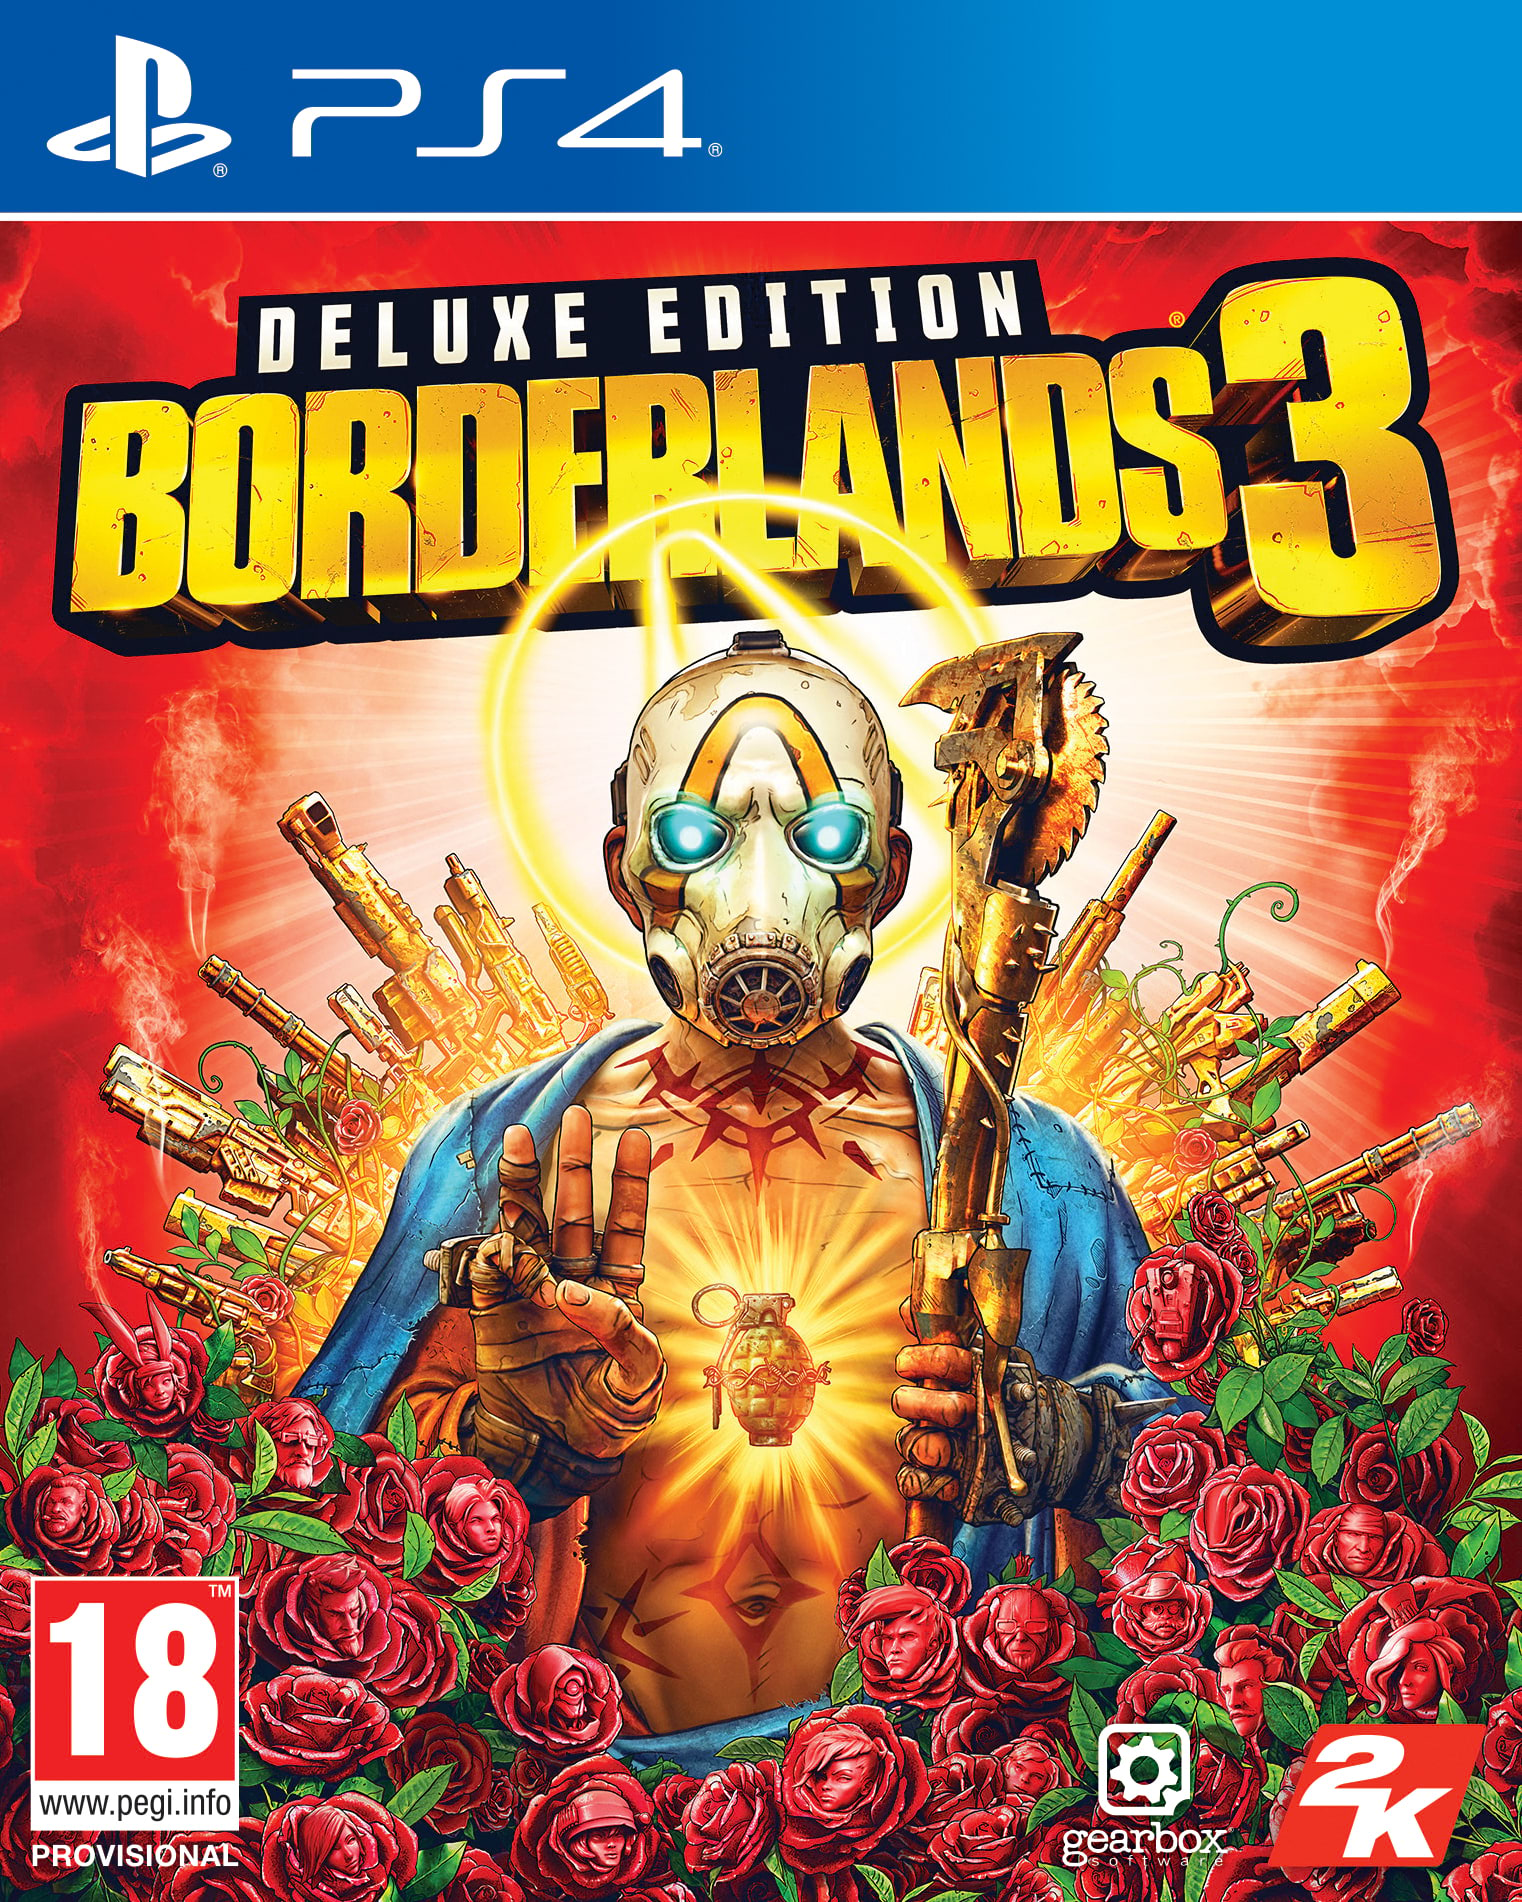 Borderlands 3 Deluxe Edition - PlayStation 4 Játékok